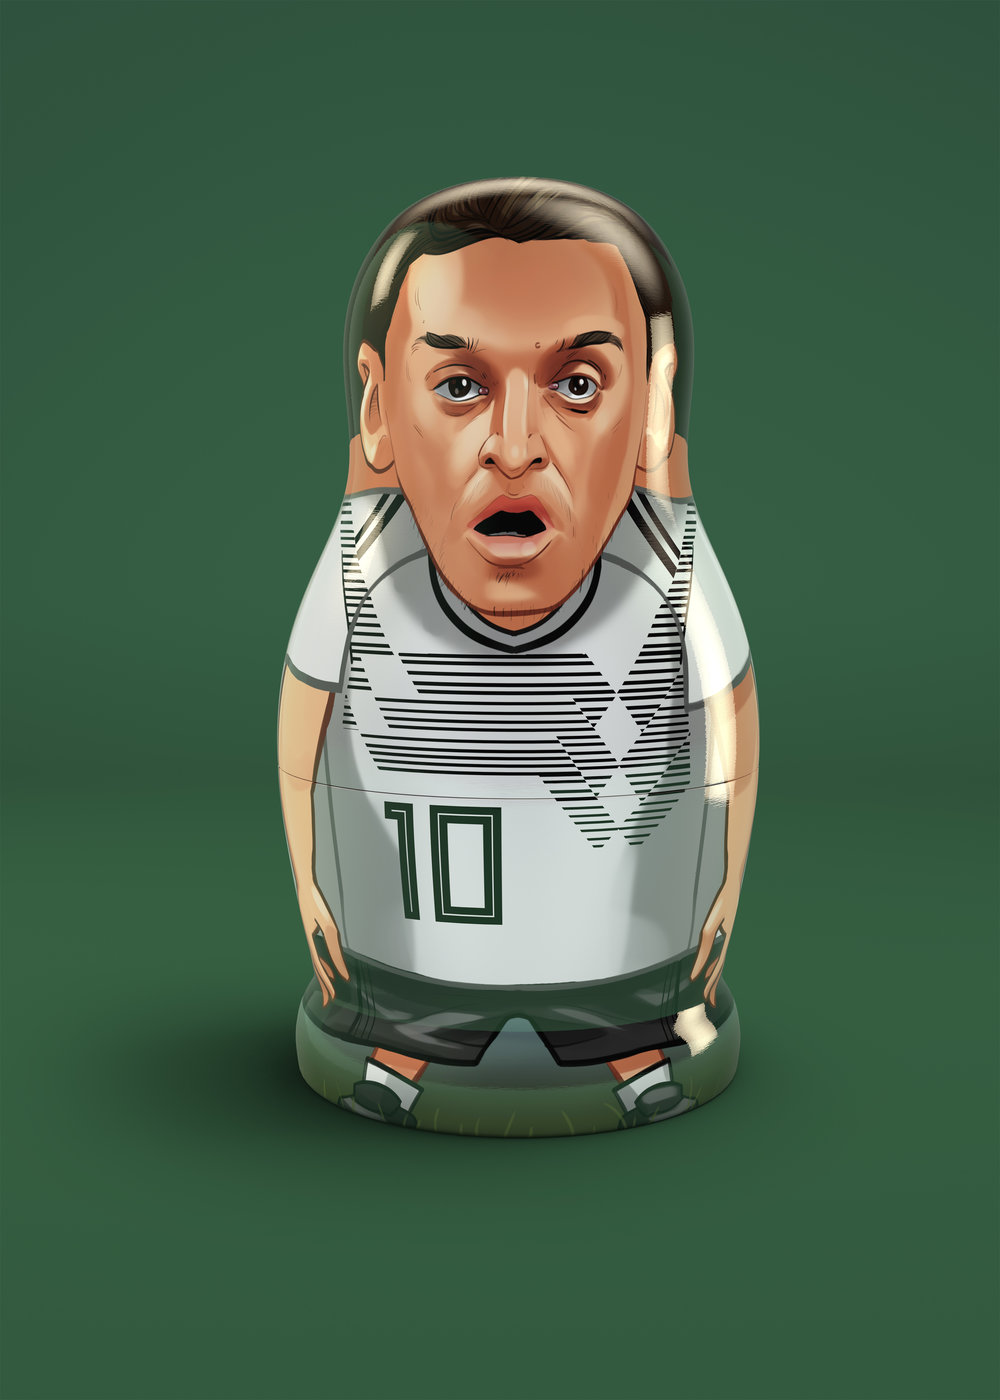 Ozil+layers+to+client.jpg